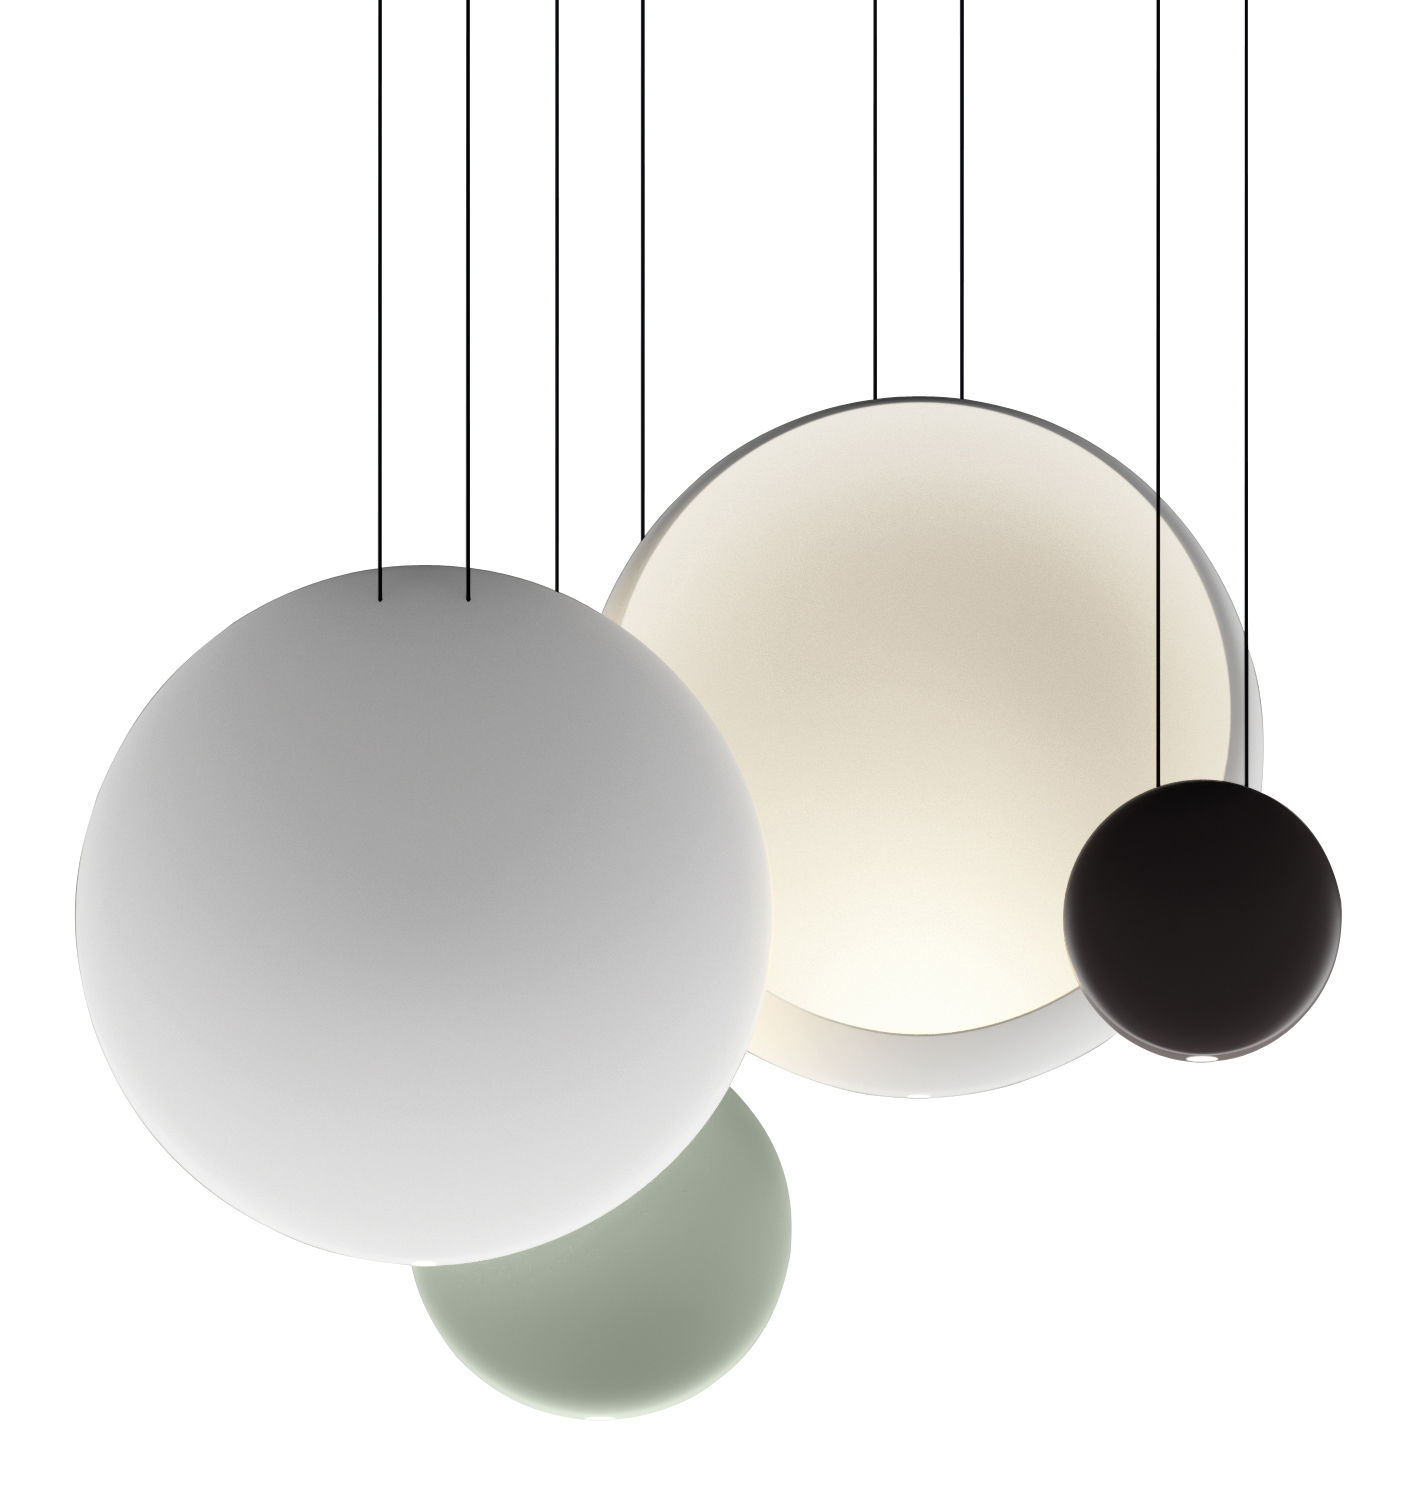 Luminaire - Suspensions - Suspension Cosmos LED / Set de 4 suspensions - L 86 cm - Vibia - Vert  Ø27 / Chocolat Ø19 / 2 x Blanc Ø48 - Polycarbonate